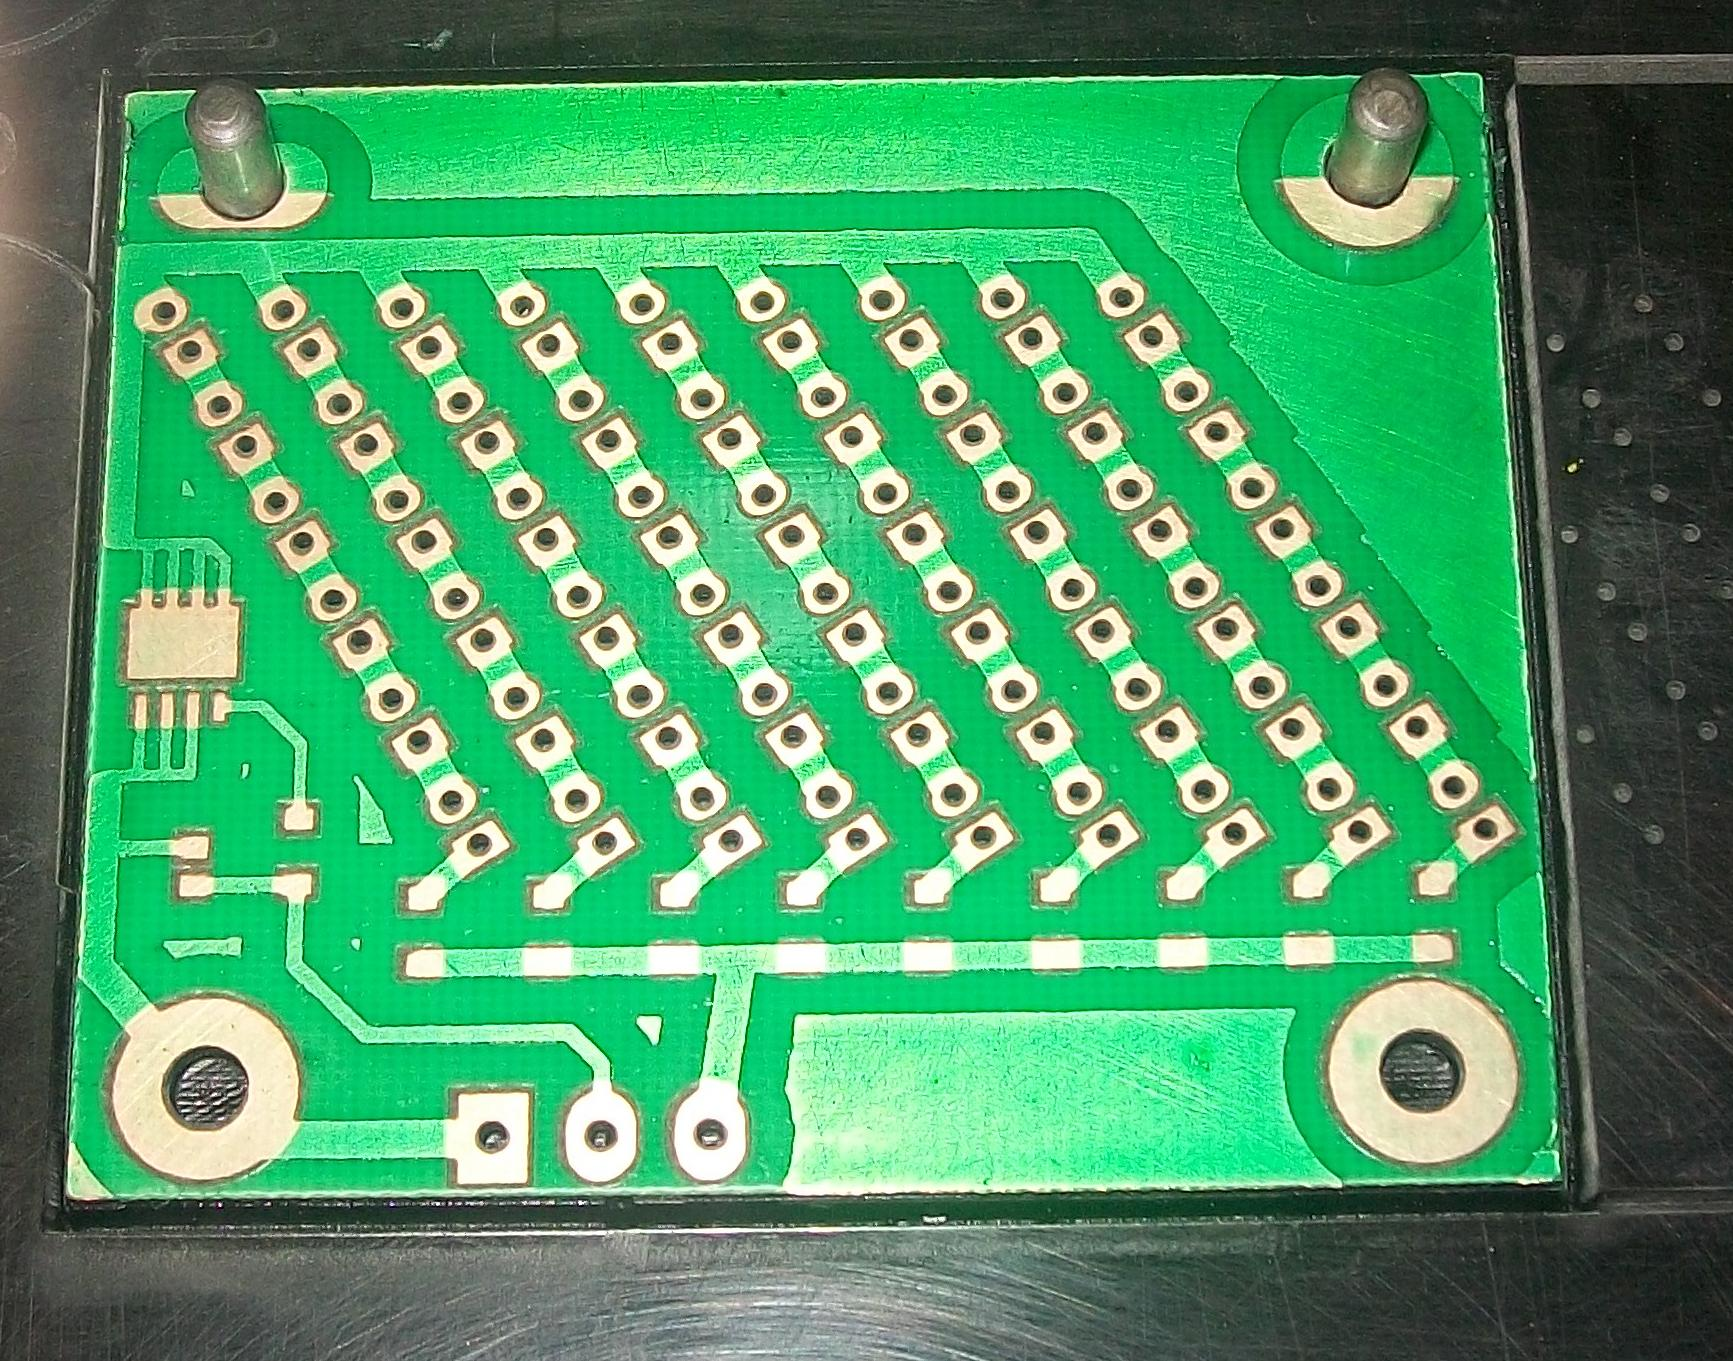 Paint Printed Circuit Picture Of How To Waterproof Boards Epoxy Method Note The Machine Is Running And Has Not Completed Removing Green Mask At